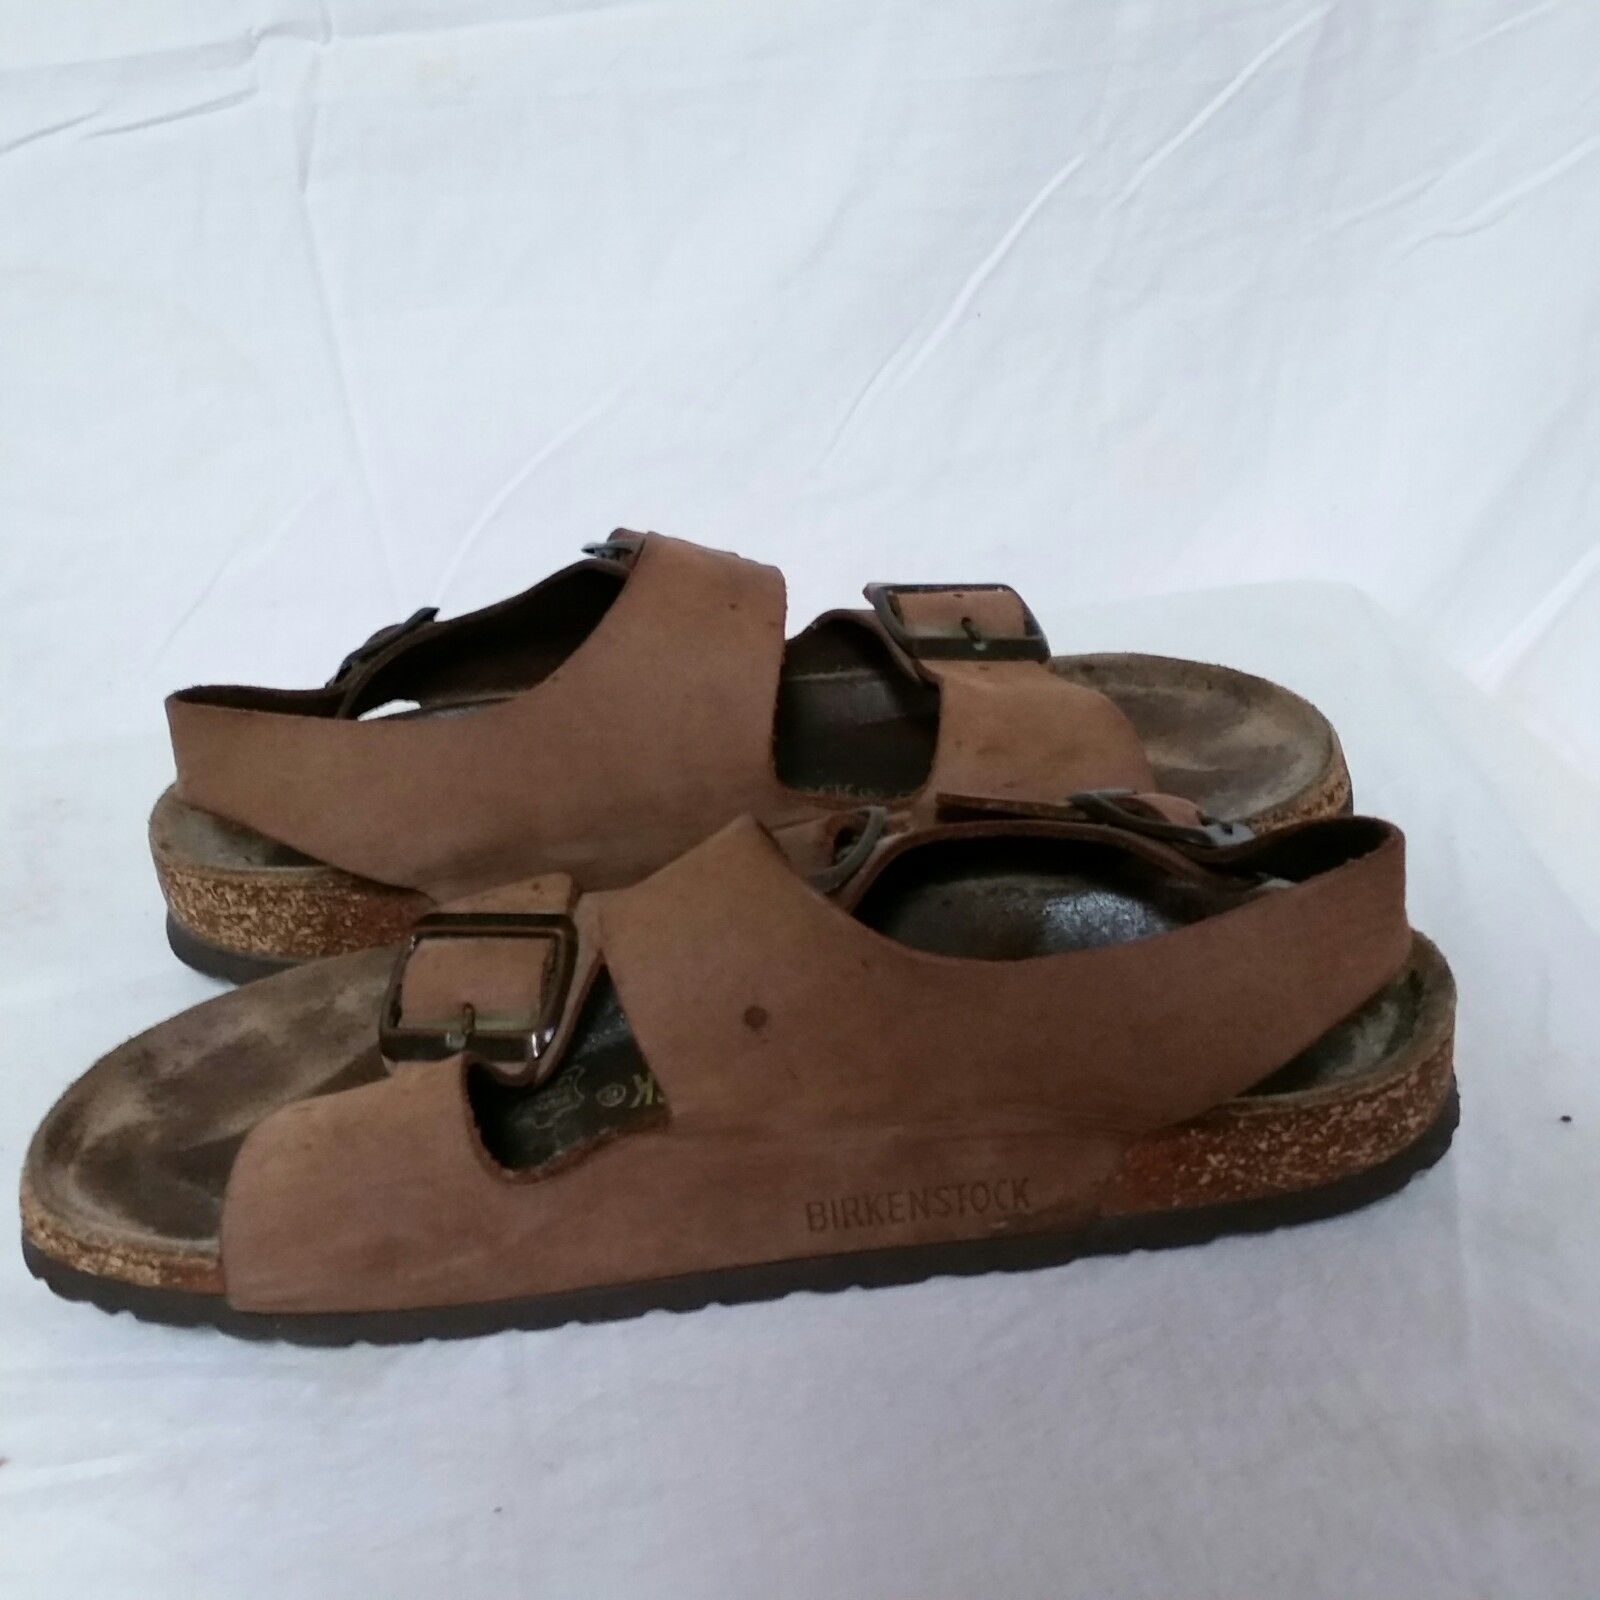 Birkenstock Ankle Strap Sandals Milano and 50 similar items